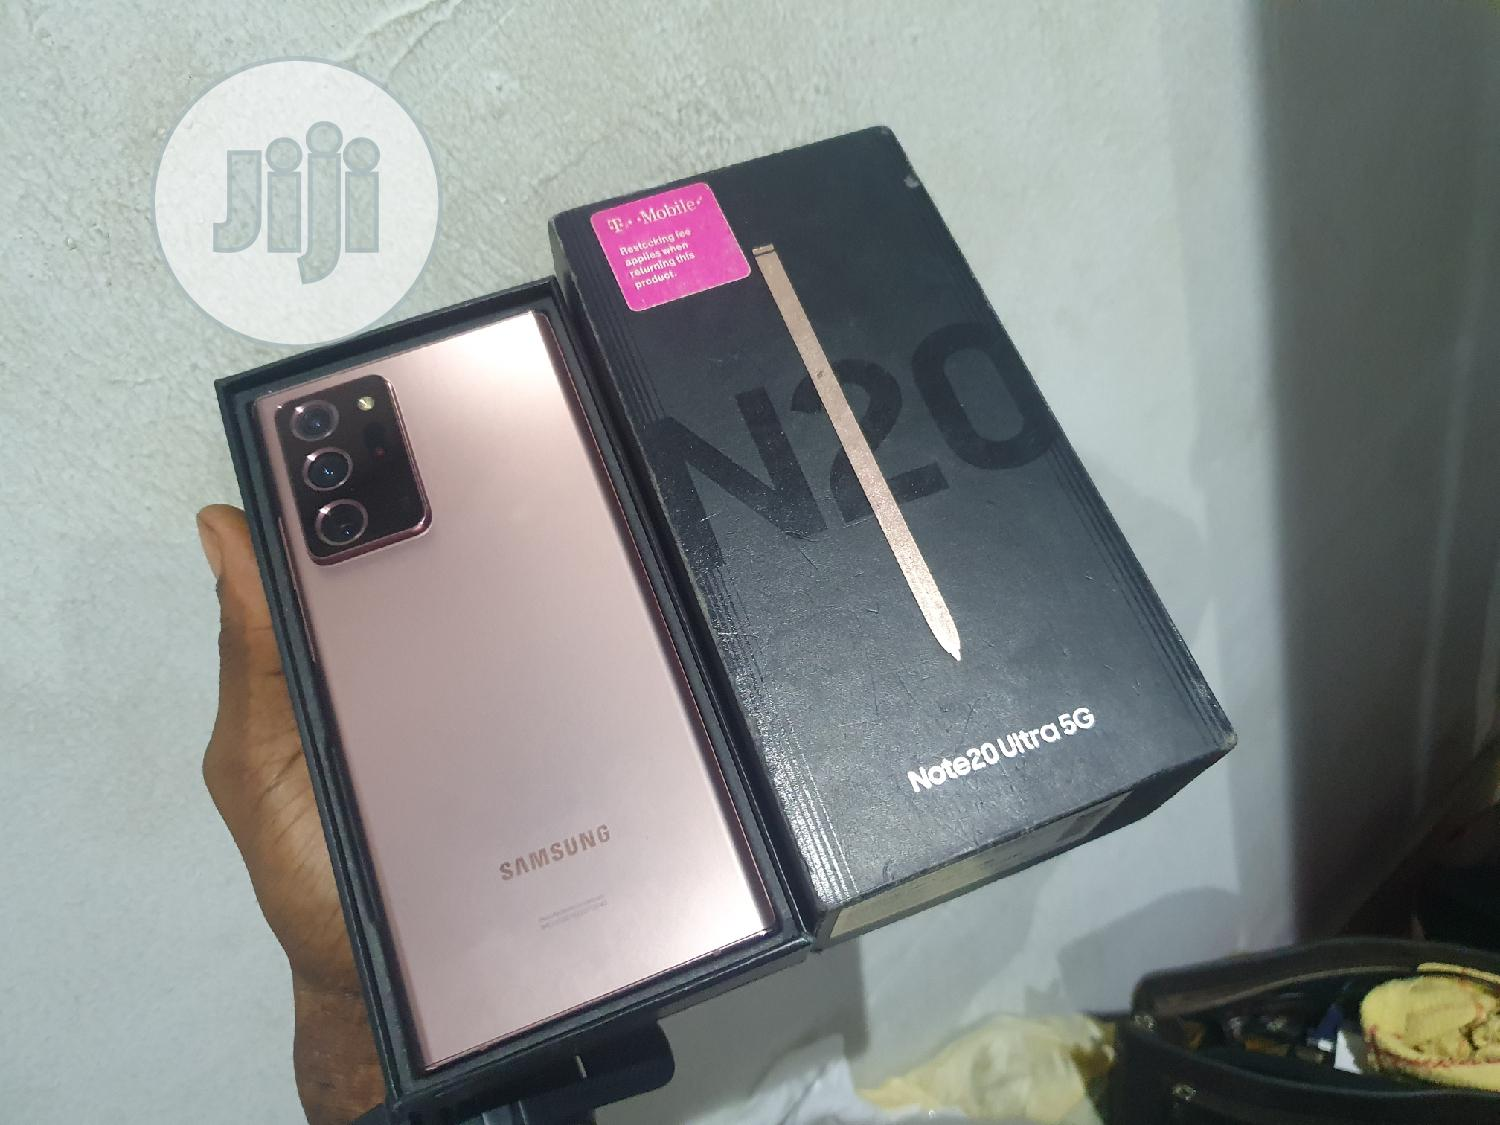 New Samsung Galaxy Note 20 Ultra 5G 128GB Pink | Mobile Phones for sale in Ibadan, Oyo State, Nigeria